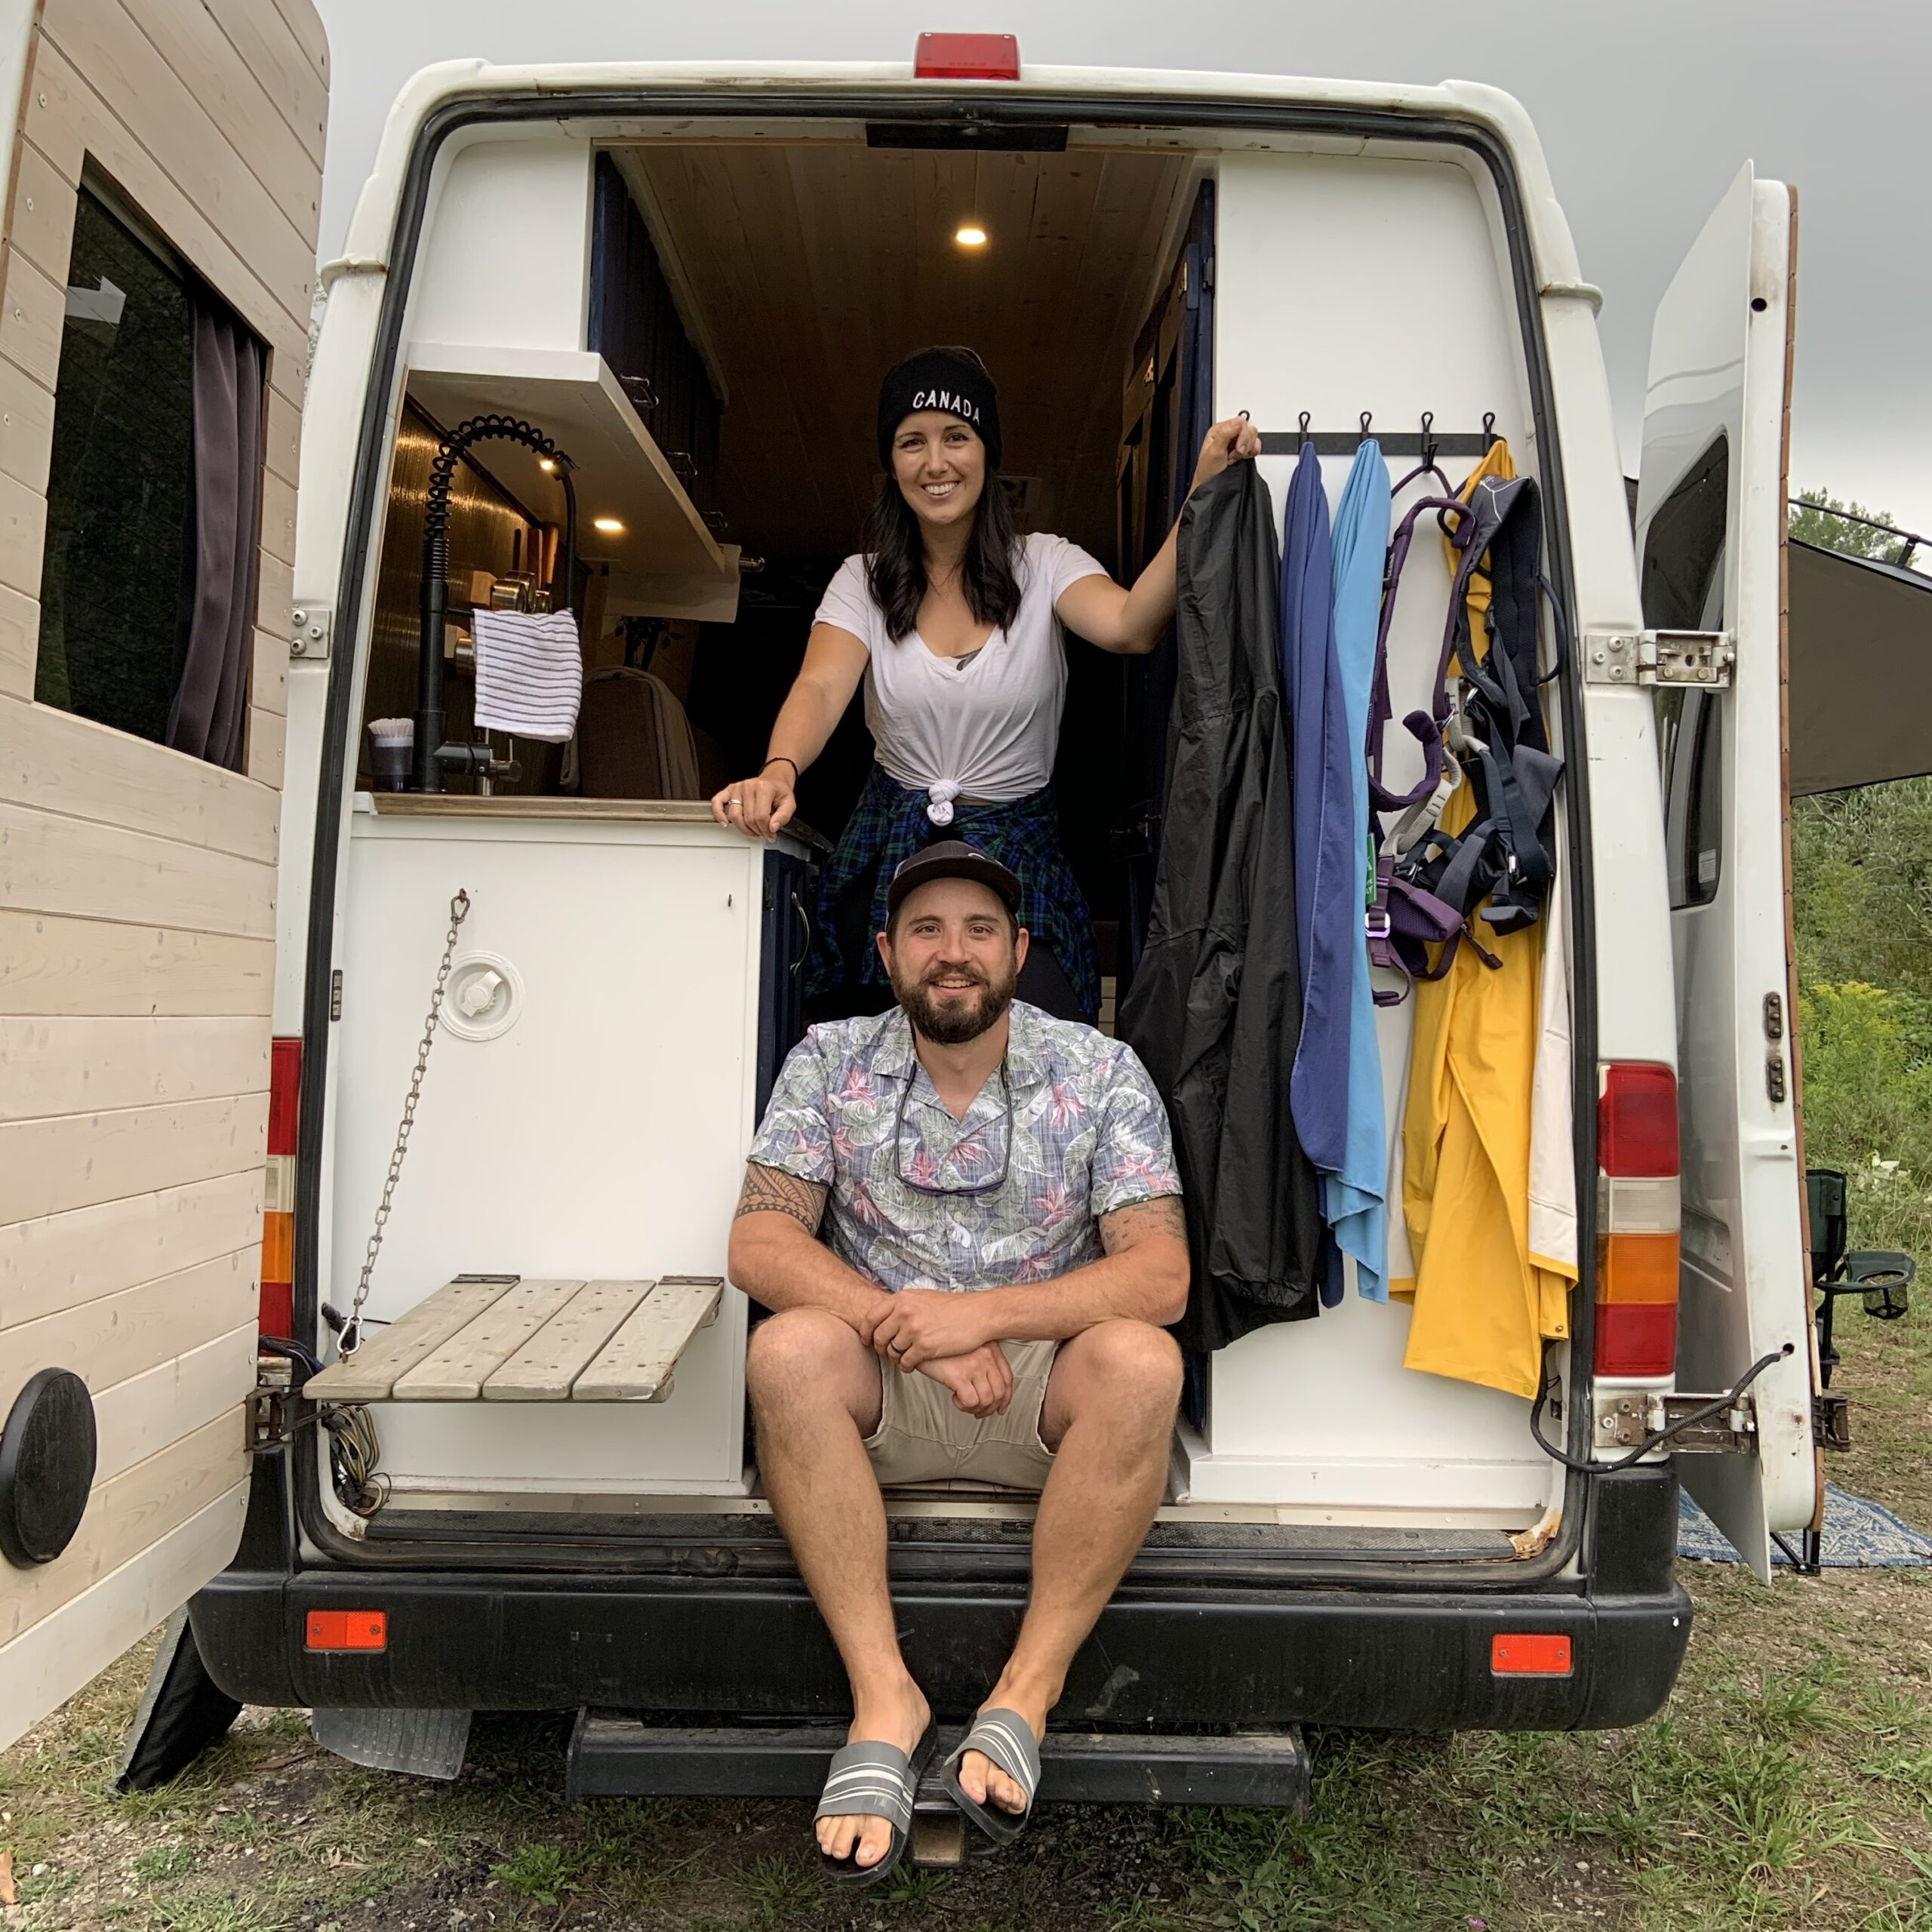 Chet and Sarah smiling at the camera and standing at the back doors of the van.